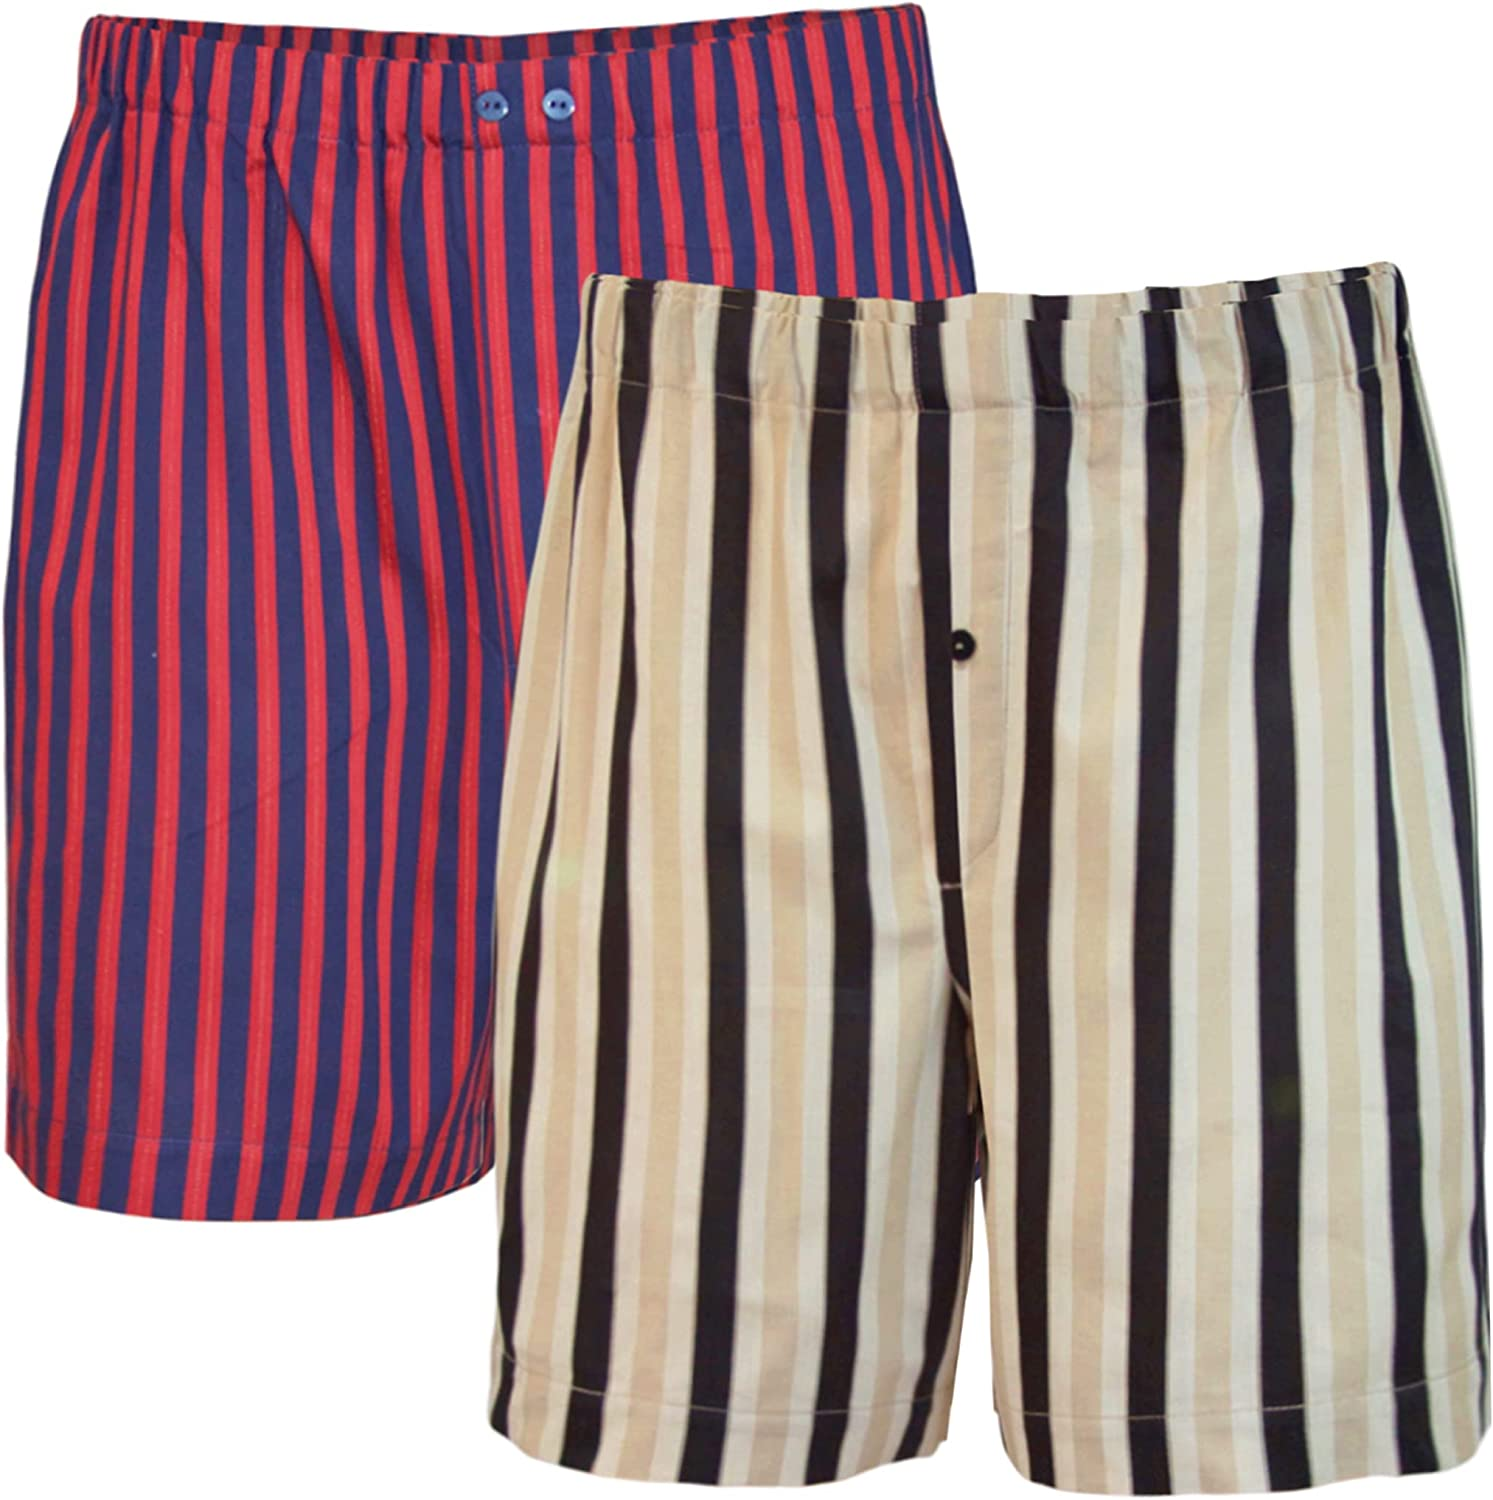 Mens Underwear 2-Pack Boxer Shorts Full Cut Striped Sateen Cotton Regular Fit - Crafted in Europe